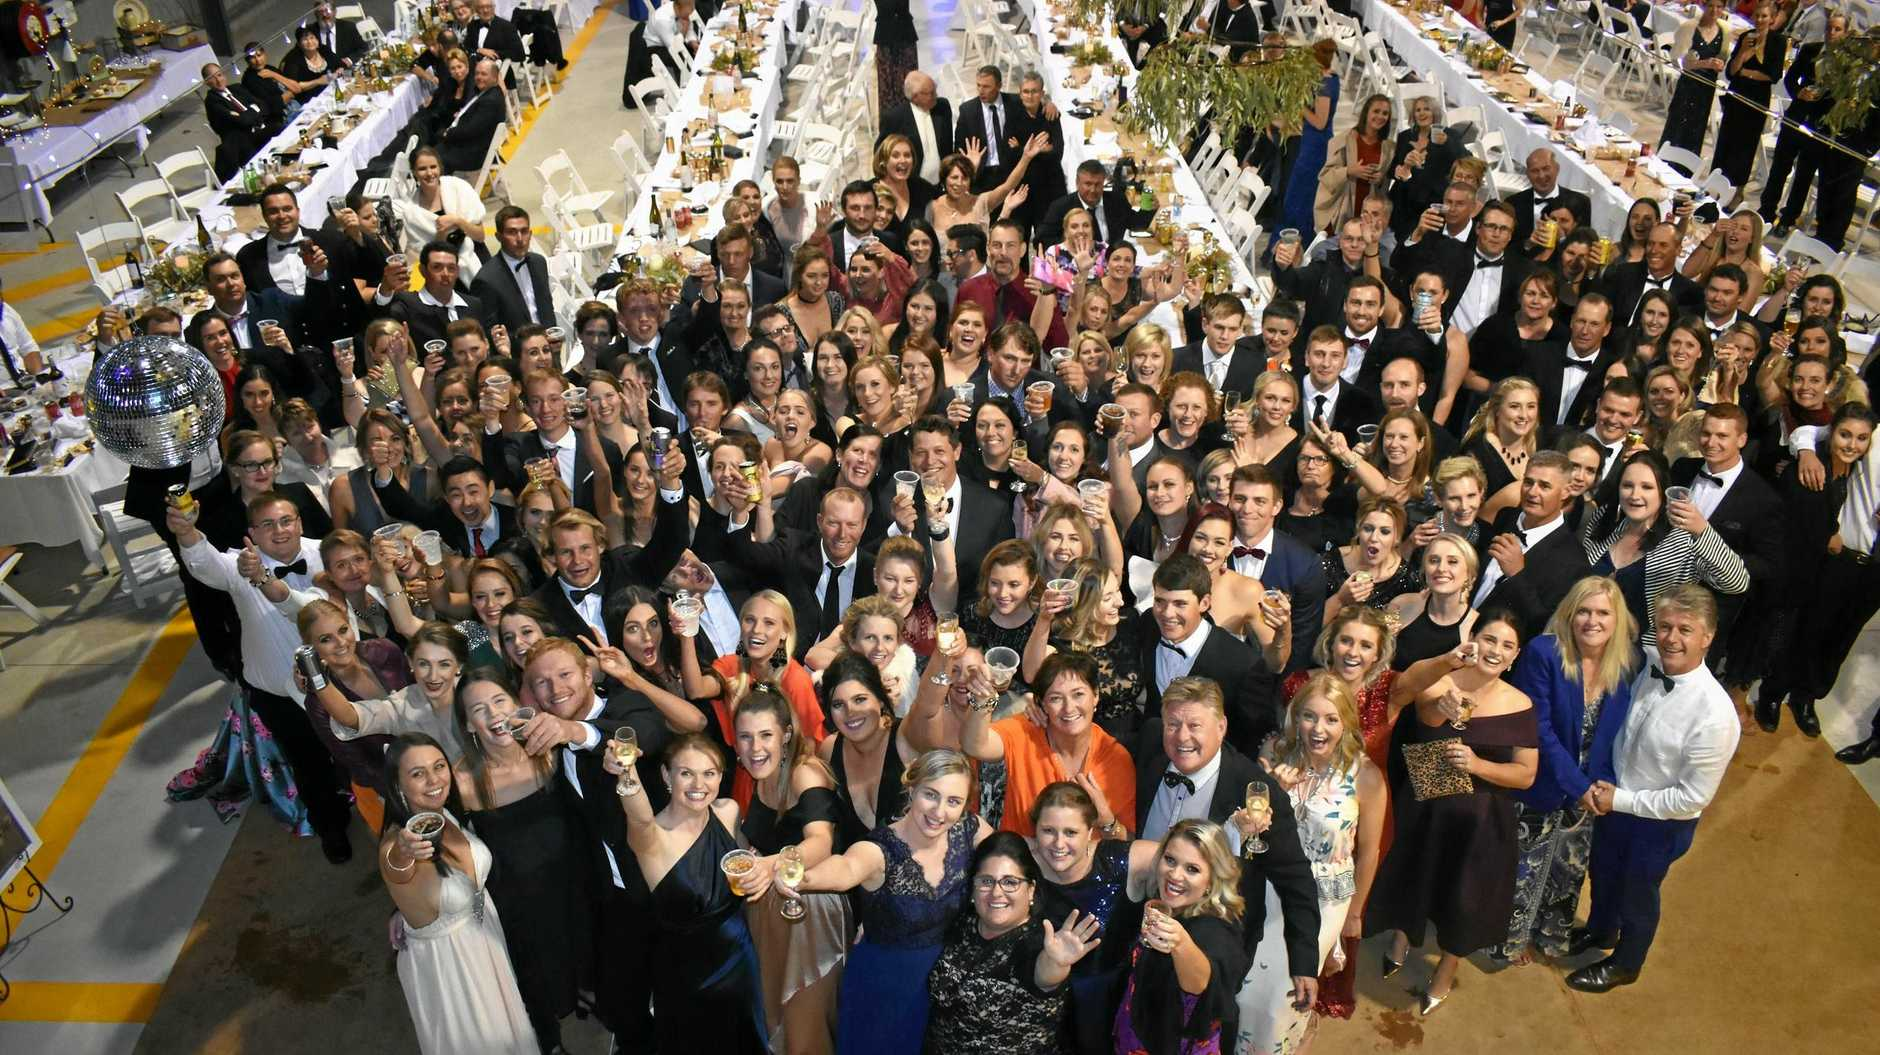 HAVING A BALL: Around 300 people packed in the RFDS Charleville base hangar on Saturday night for the Western Winter ball.